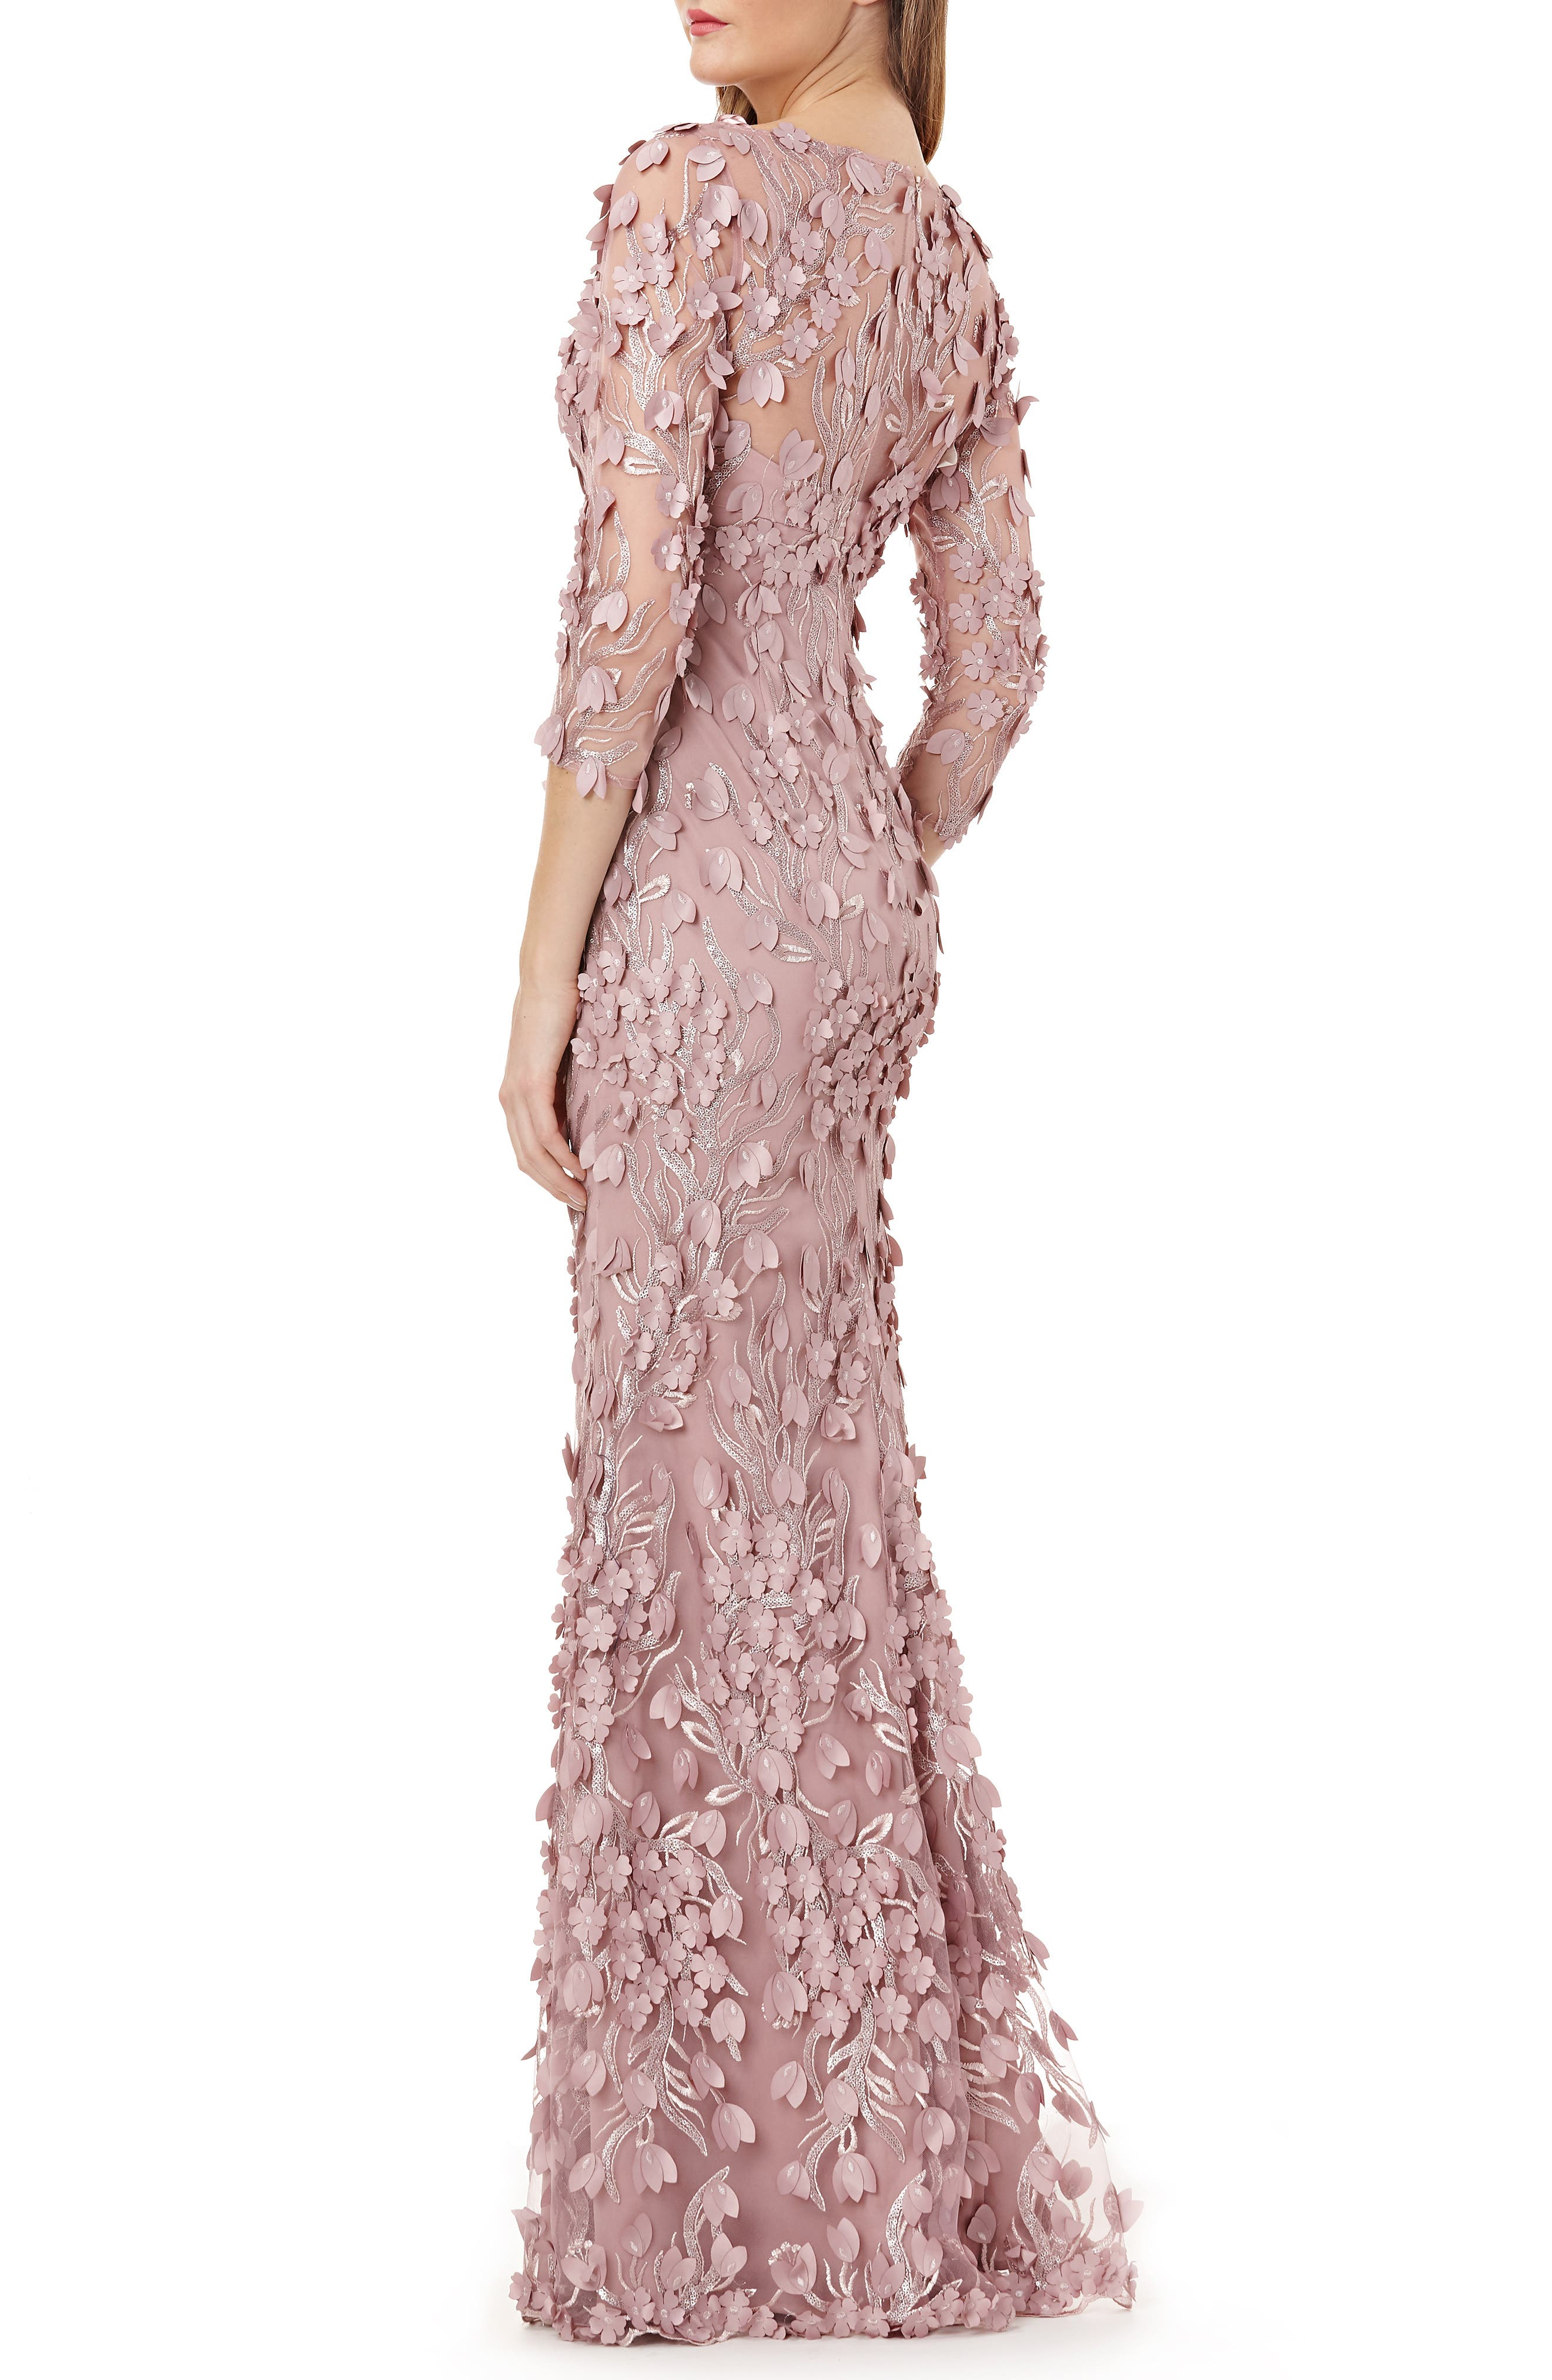 3D Novelty Gown,                             Alternate thumbnail 2, color,                             DUSTY ROSE